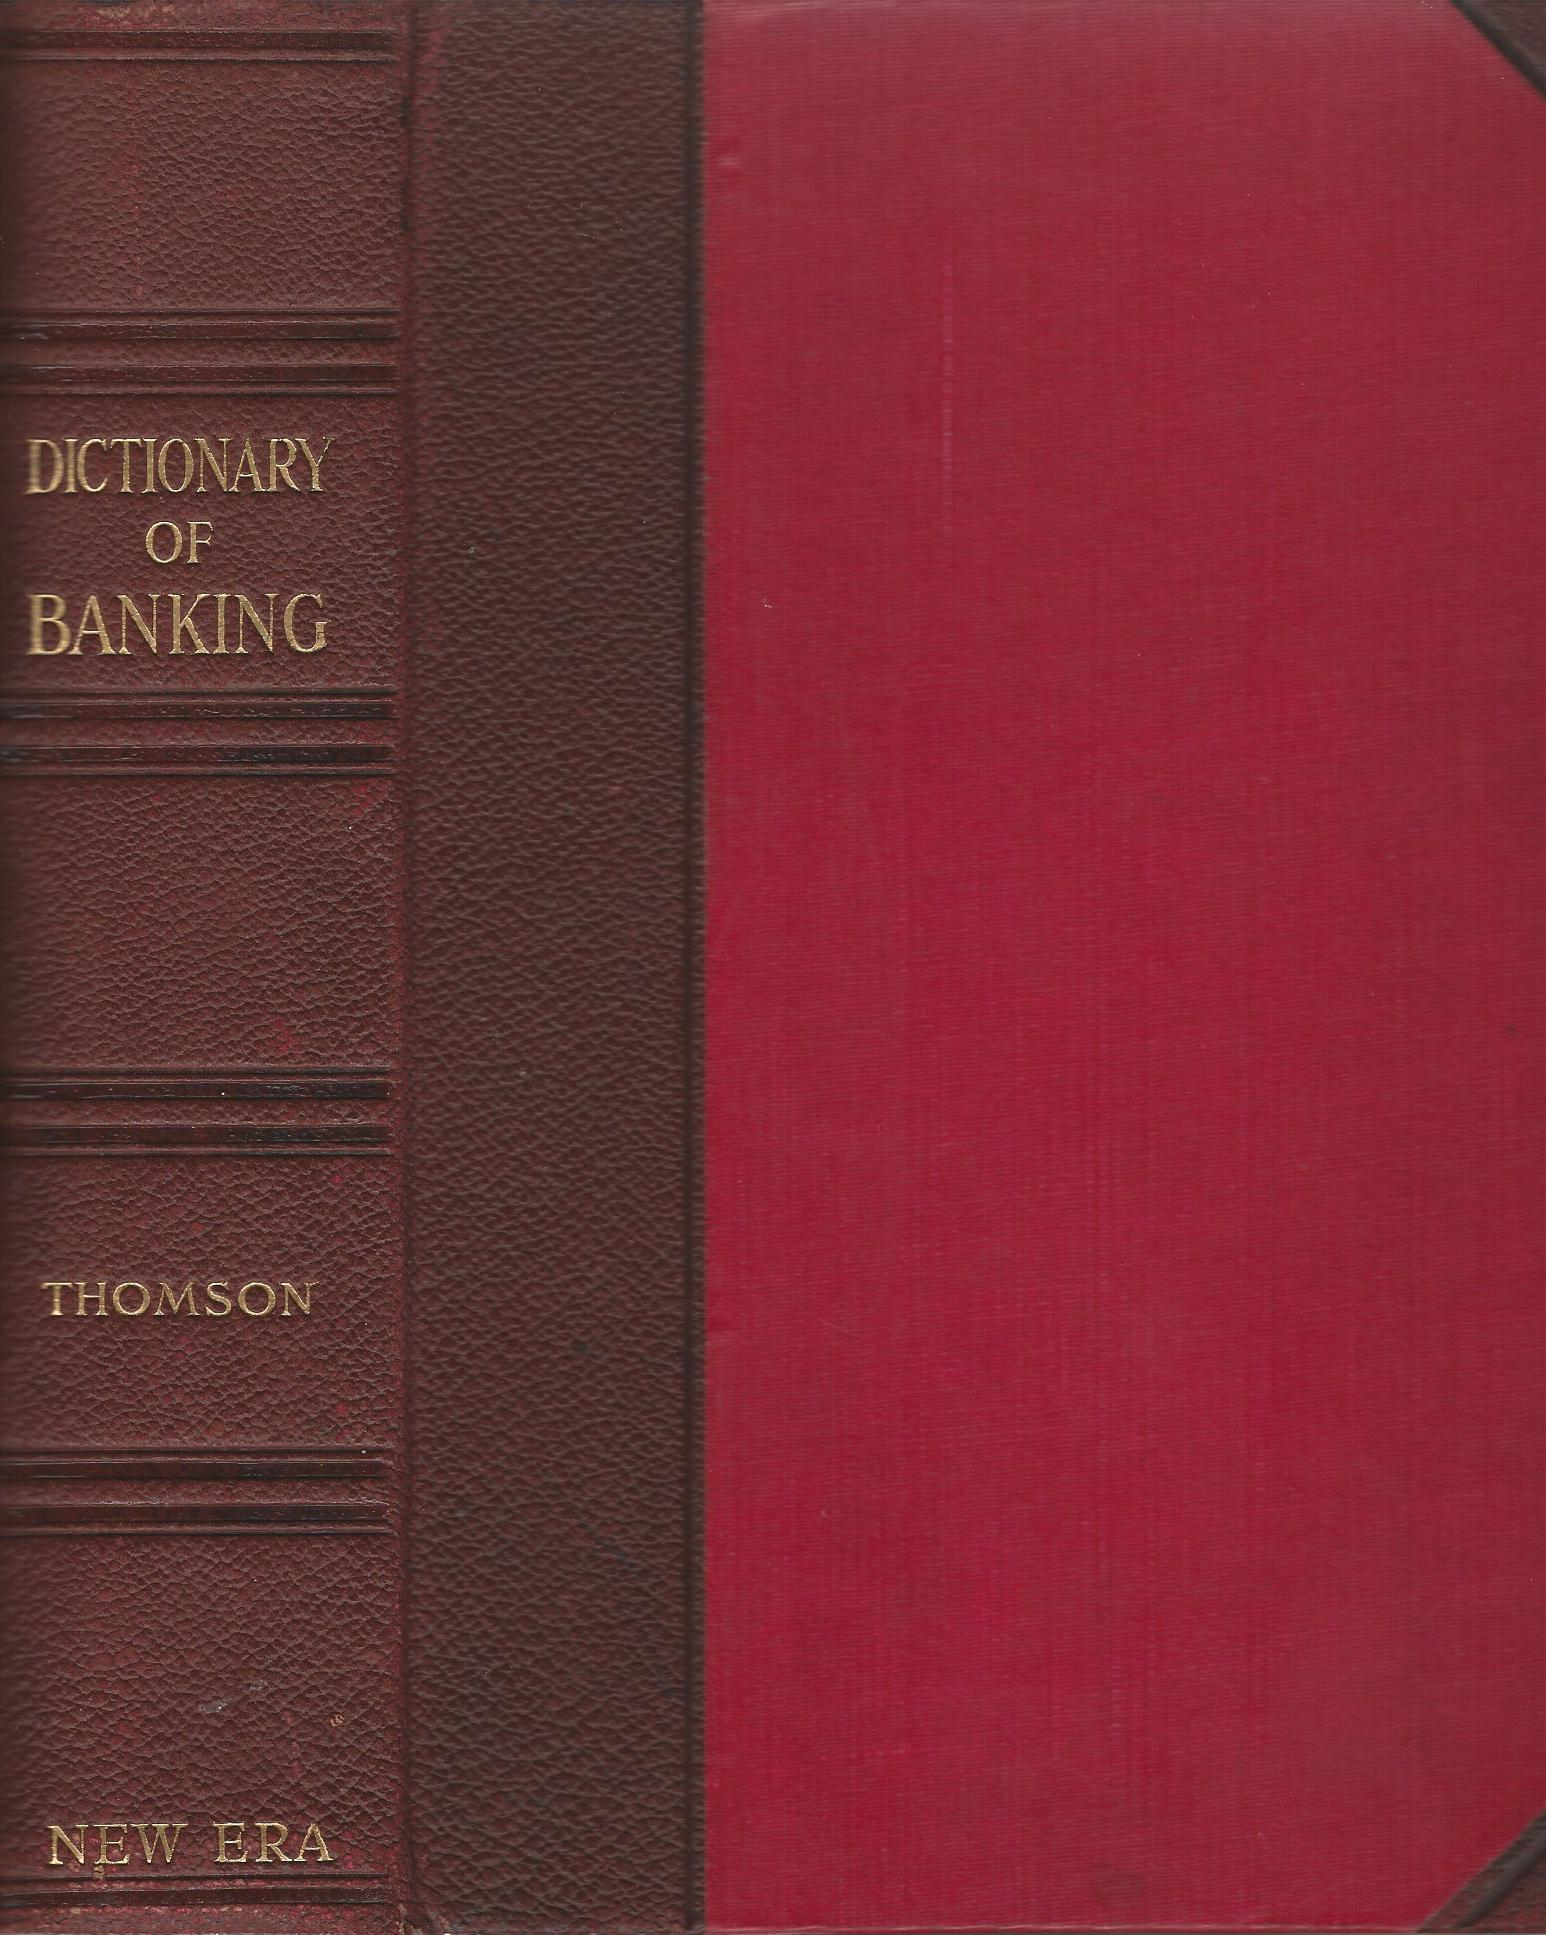 Image for Dictionary of Banking: A Concise Encyclopaedia of Banking Law and Practice